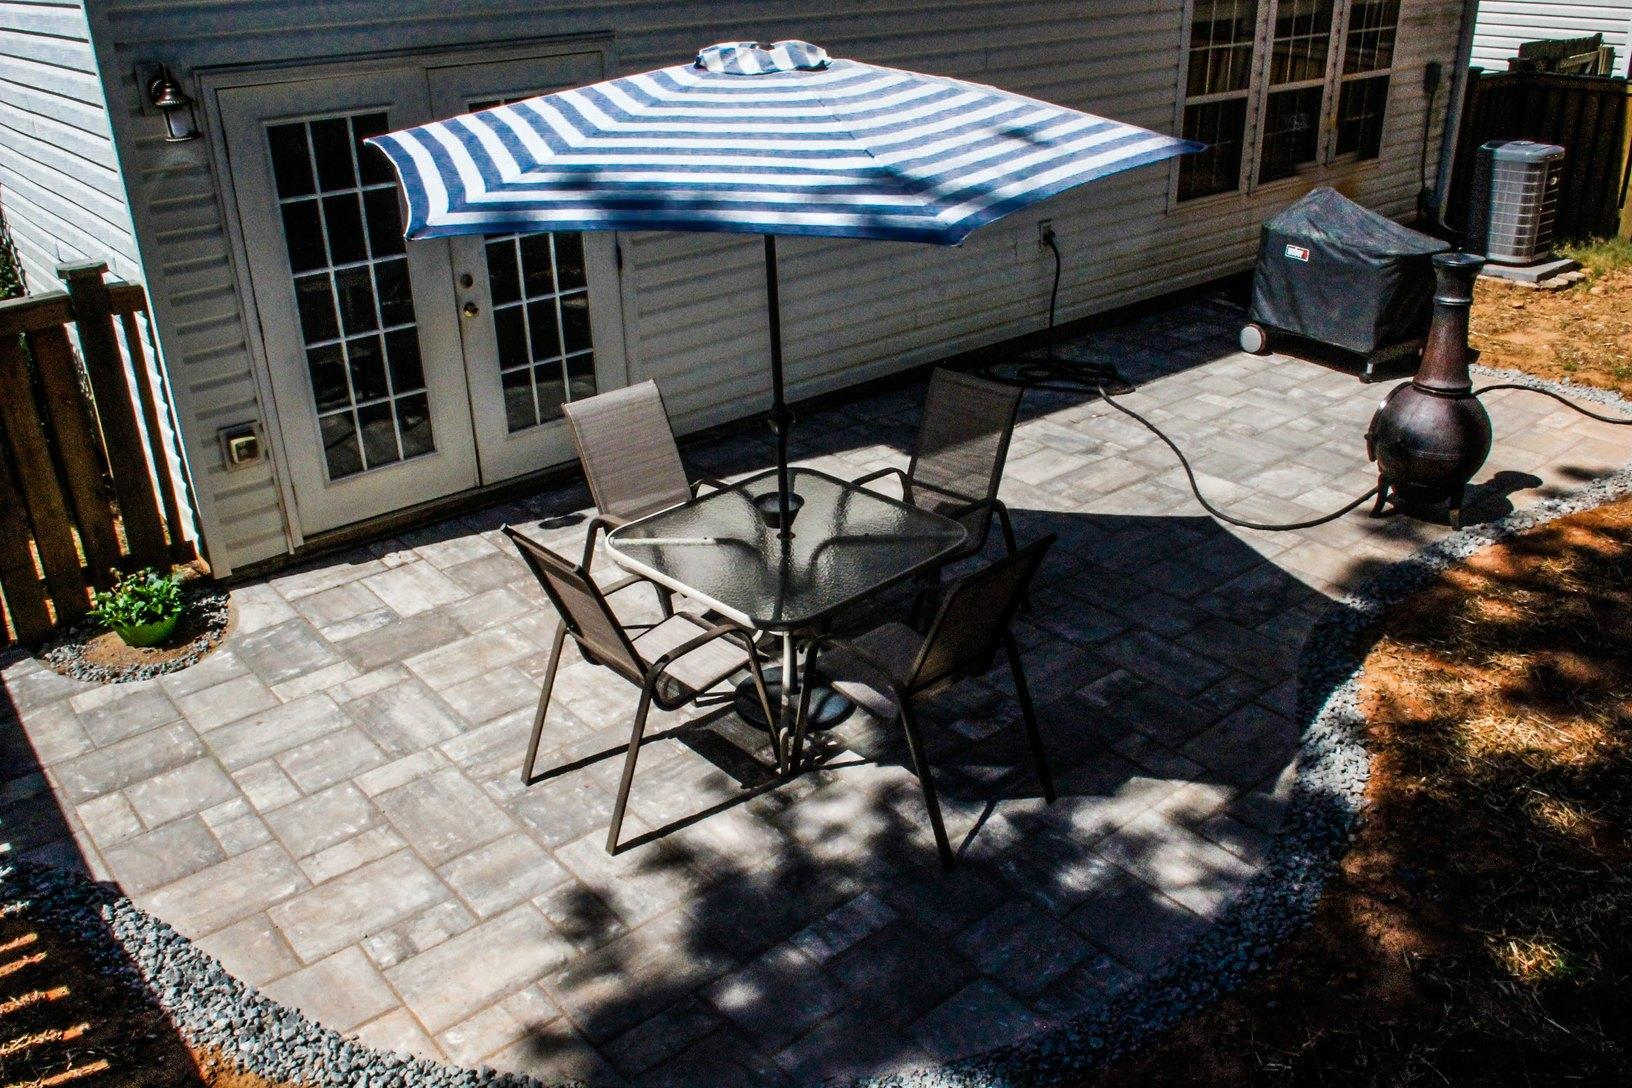 Concrete Slab Patio transformed in a Beautiful New Paver stone Patio - After Photo